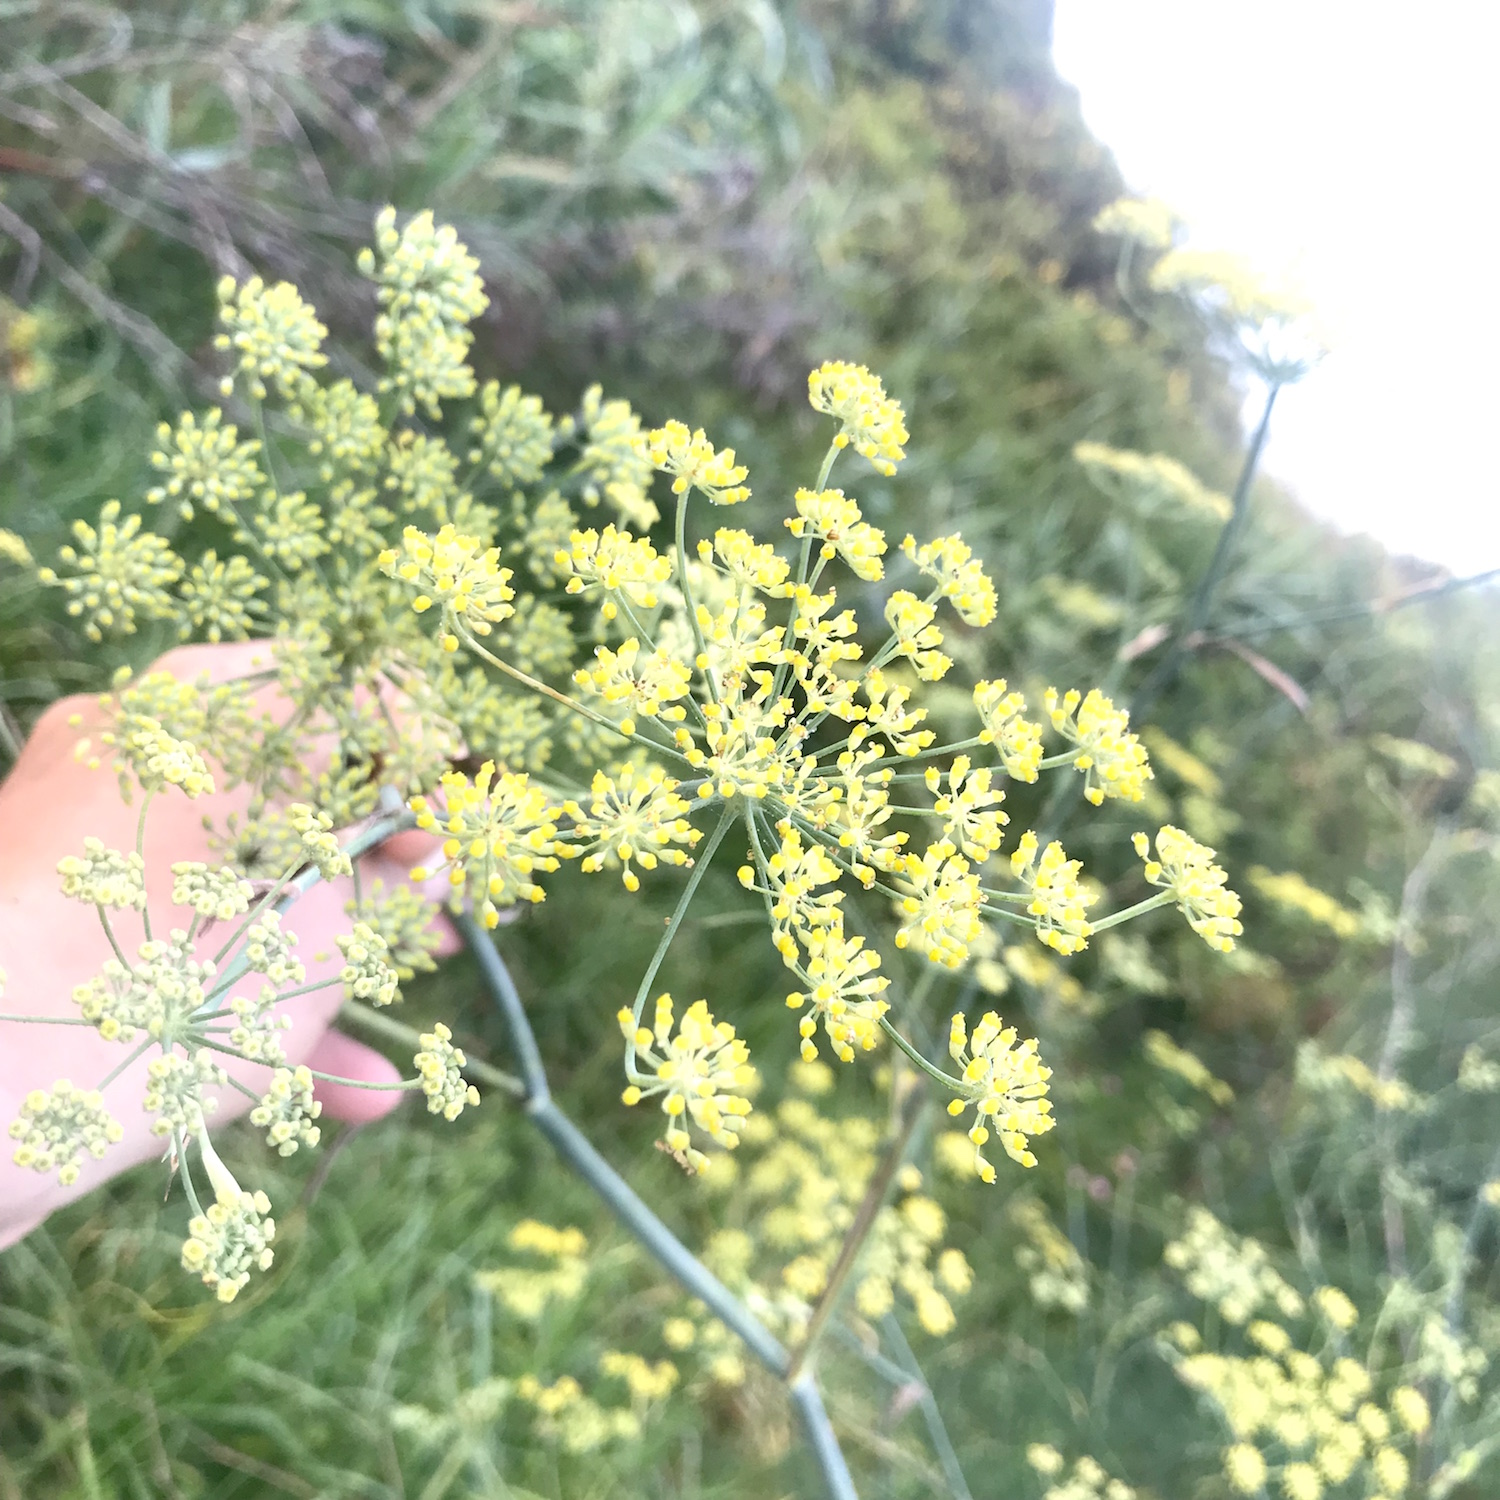 - Wild fennel Flowerheads –Foeniculum vulgarePlenty to offer, at the moment sweet and fresh young seeds.25g 600ml punnet